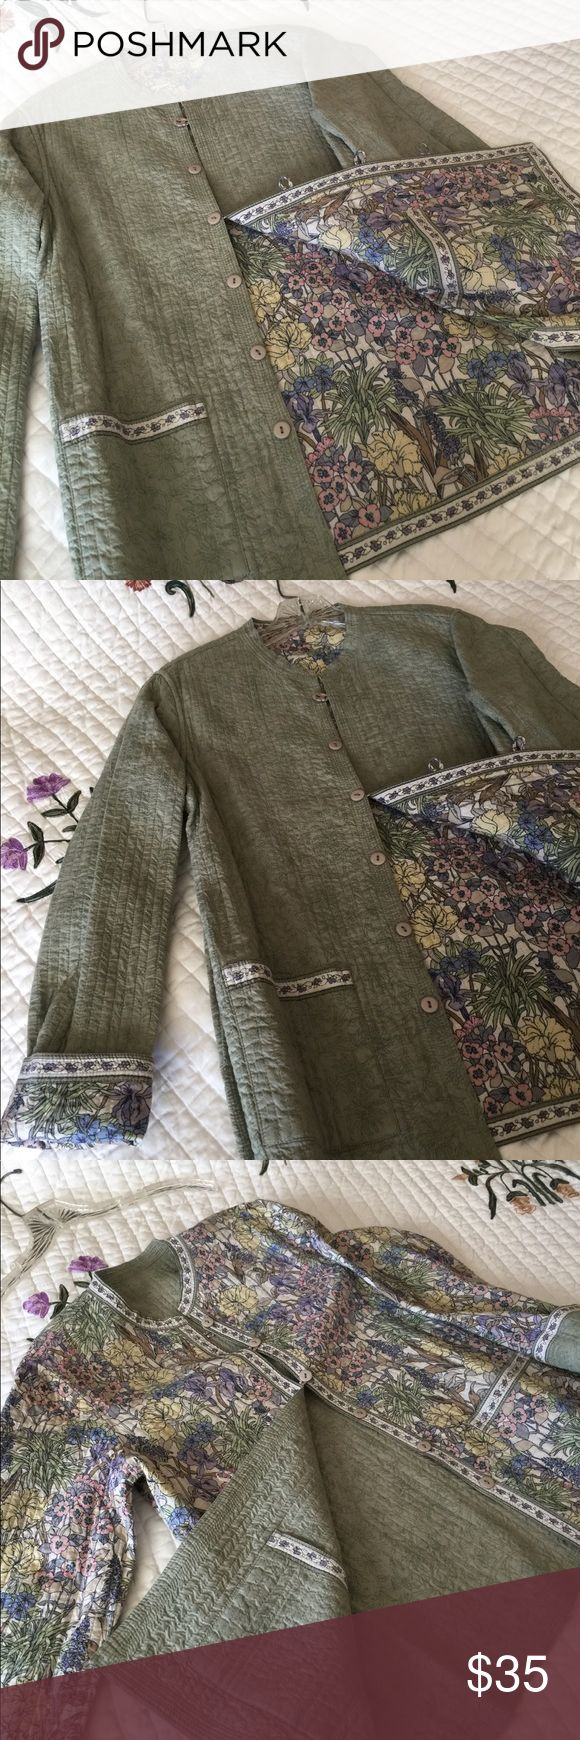 New women's Reversible Cotton Thin Jacket Size M Reversible .Fine 100% Cotton..very pleasant pistachio color on one side and color print on the other Two pockets  on each side unbrand Jackets & Coats